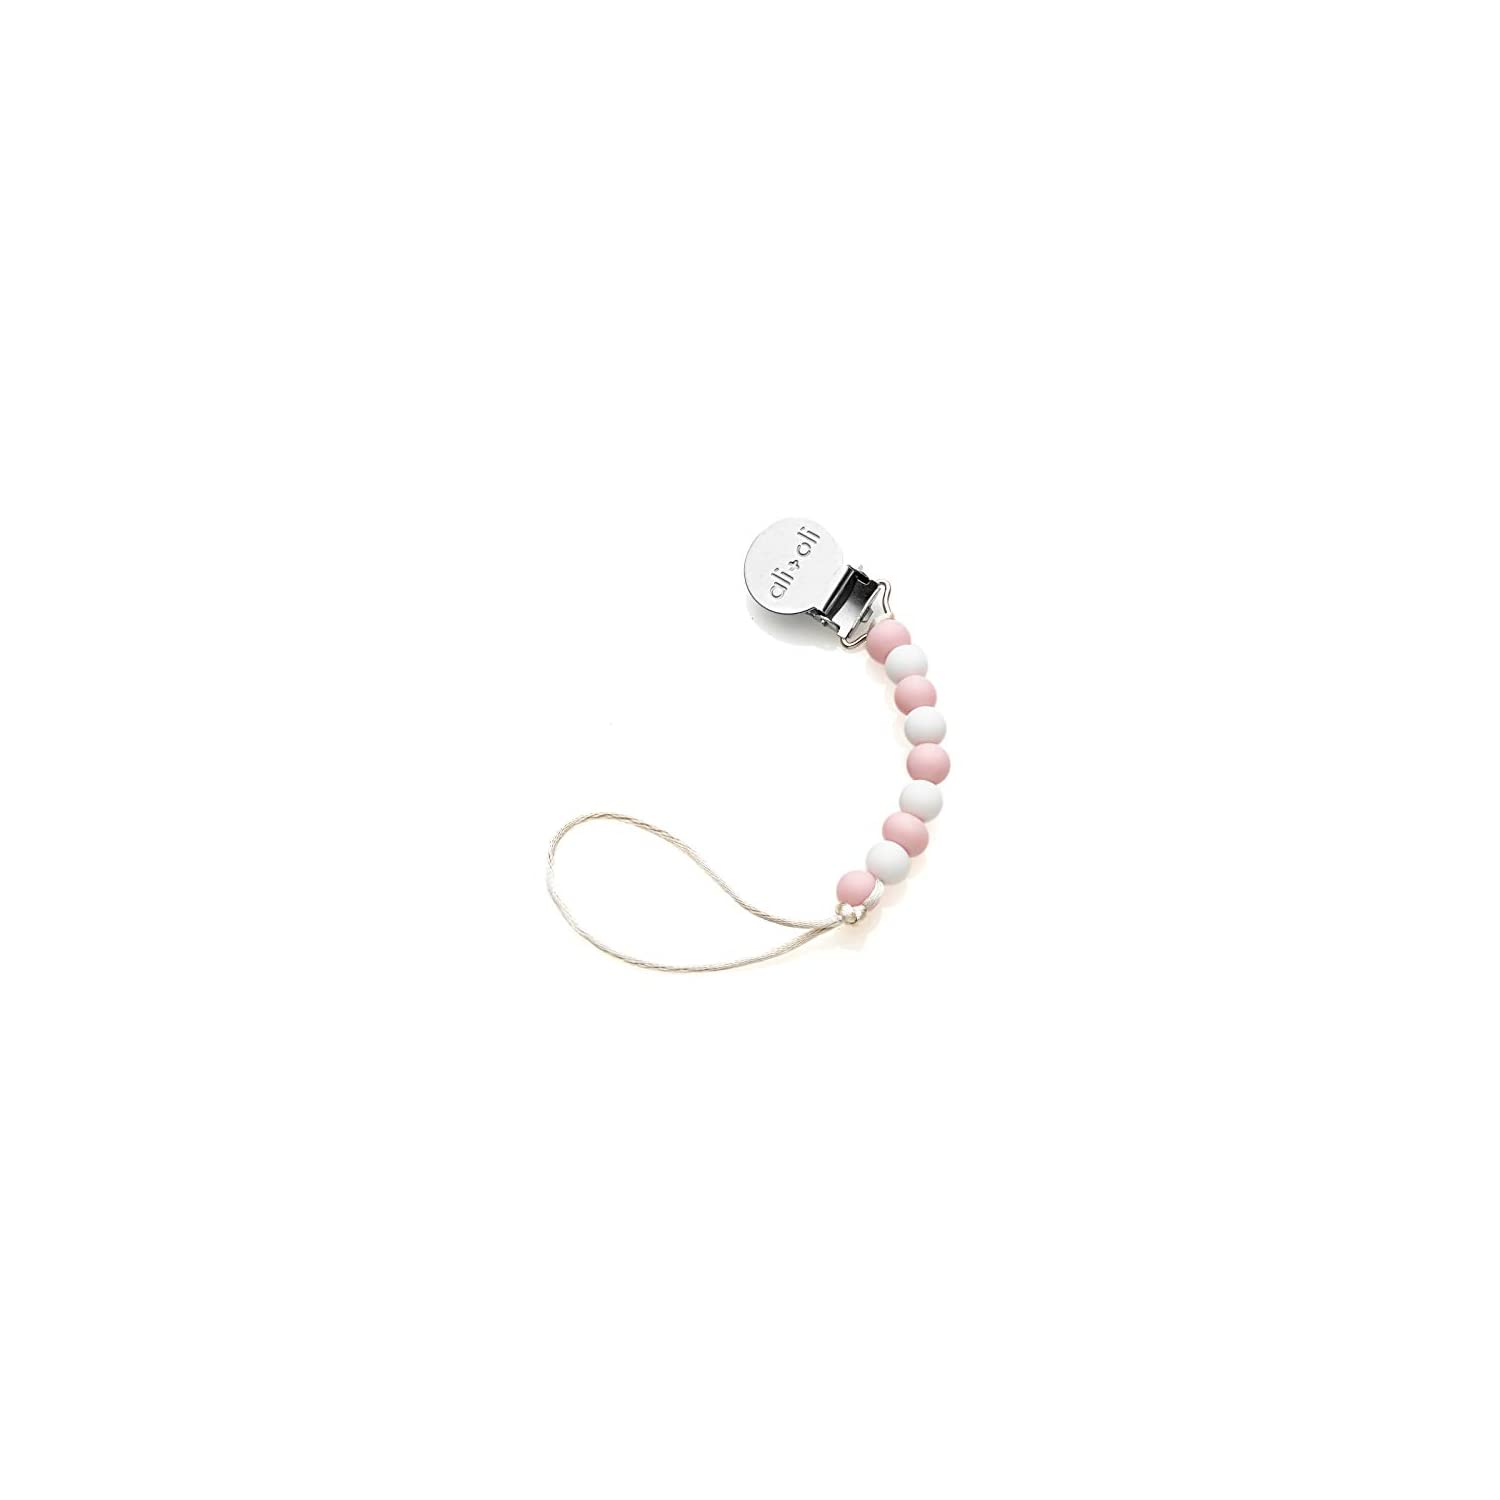 Modern Pacifier Clip for Baby – 100% BPA Free Silicone Beads (Slim Pink) Binky Holder for Newborn – Infant Baby Shower Gift – Universal fit MAM – Philips Avent